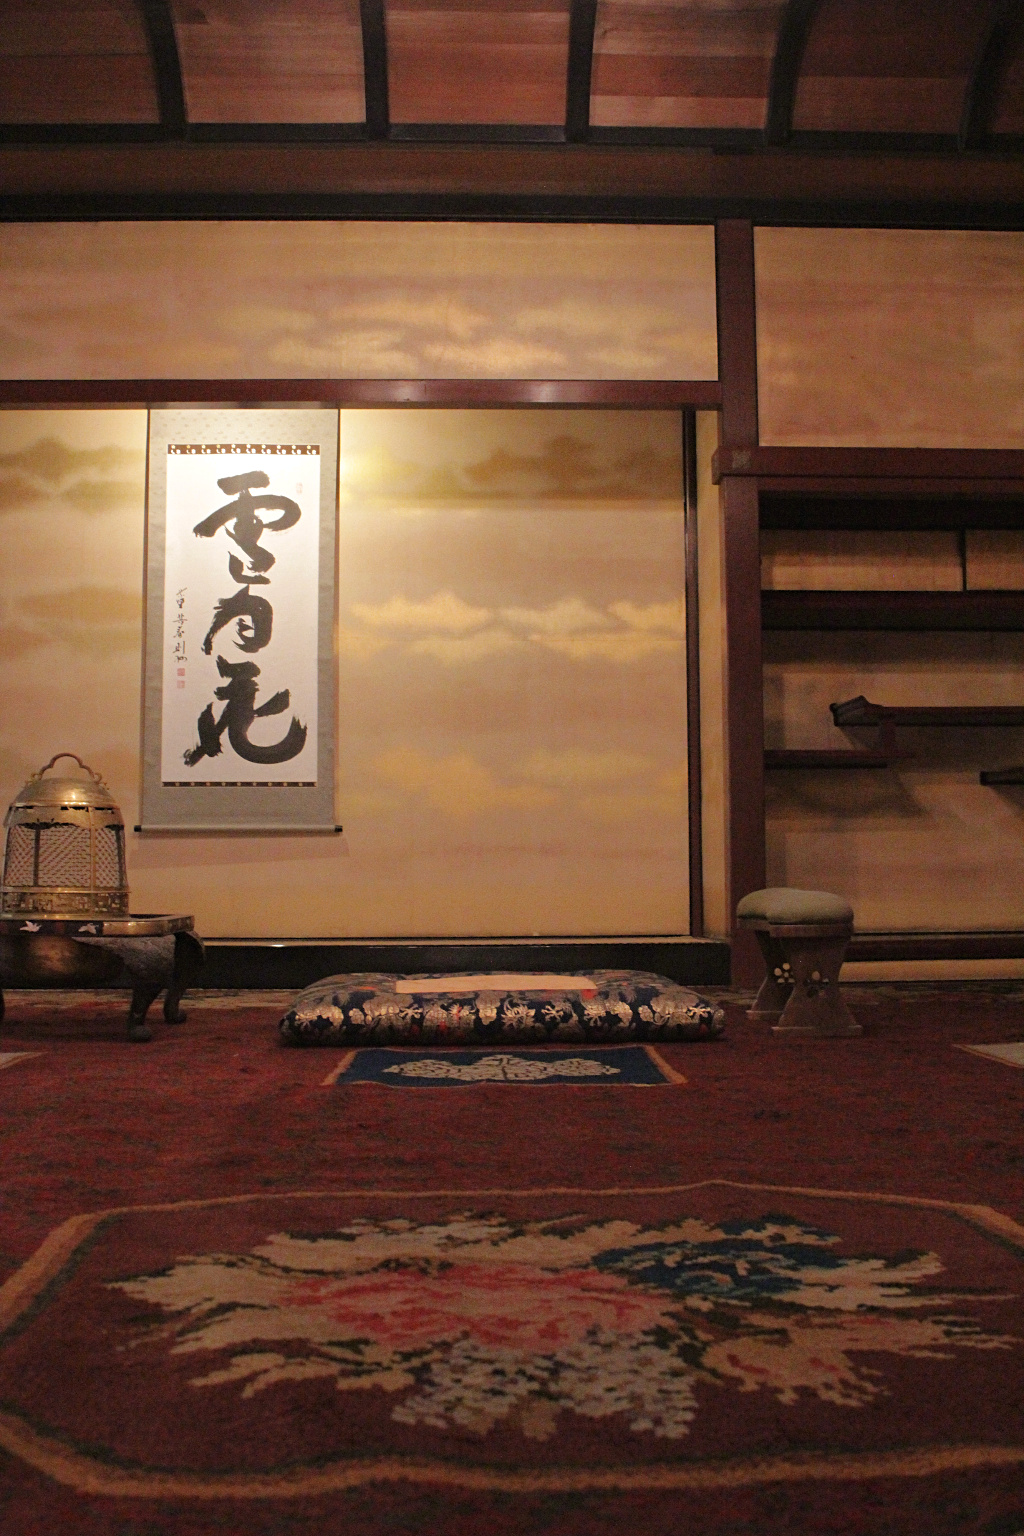 The view as one rises from a deep bow before the seat of Seisonkaku's receiving room.